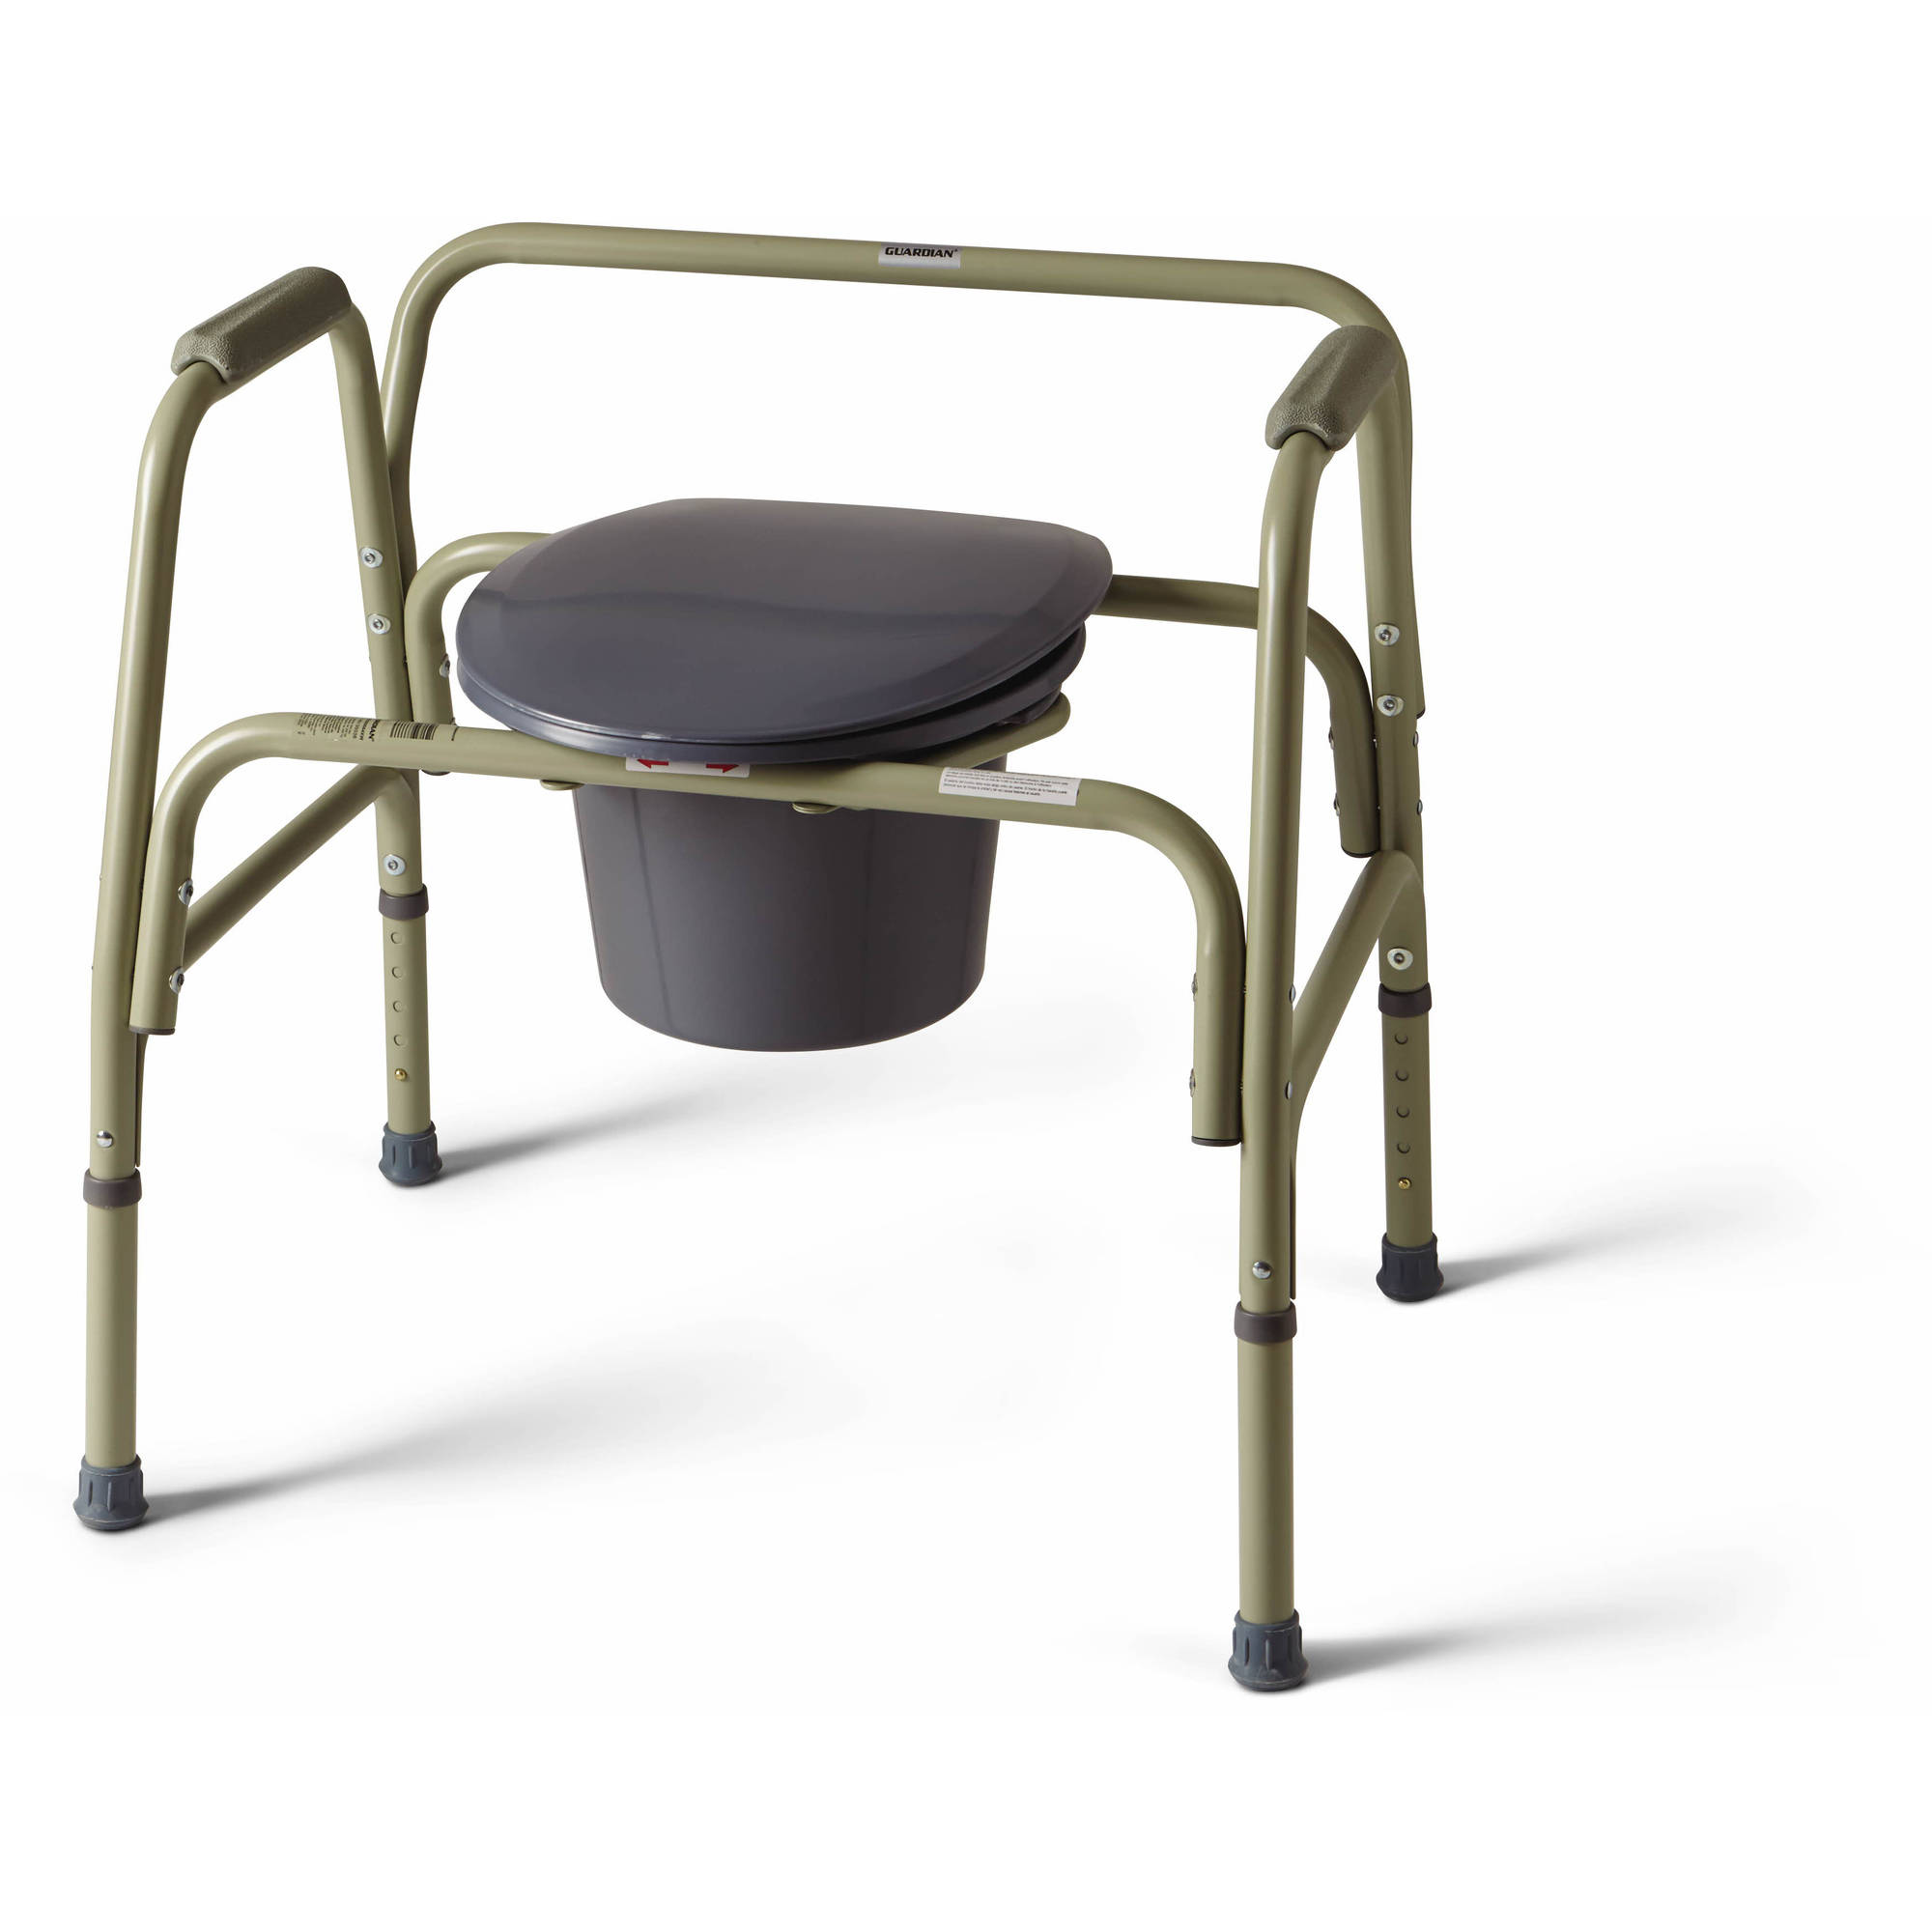 Medline Steel Extra-Wide Bariatric Commode